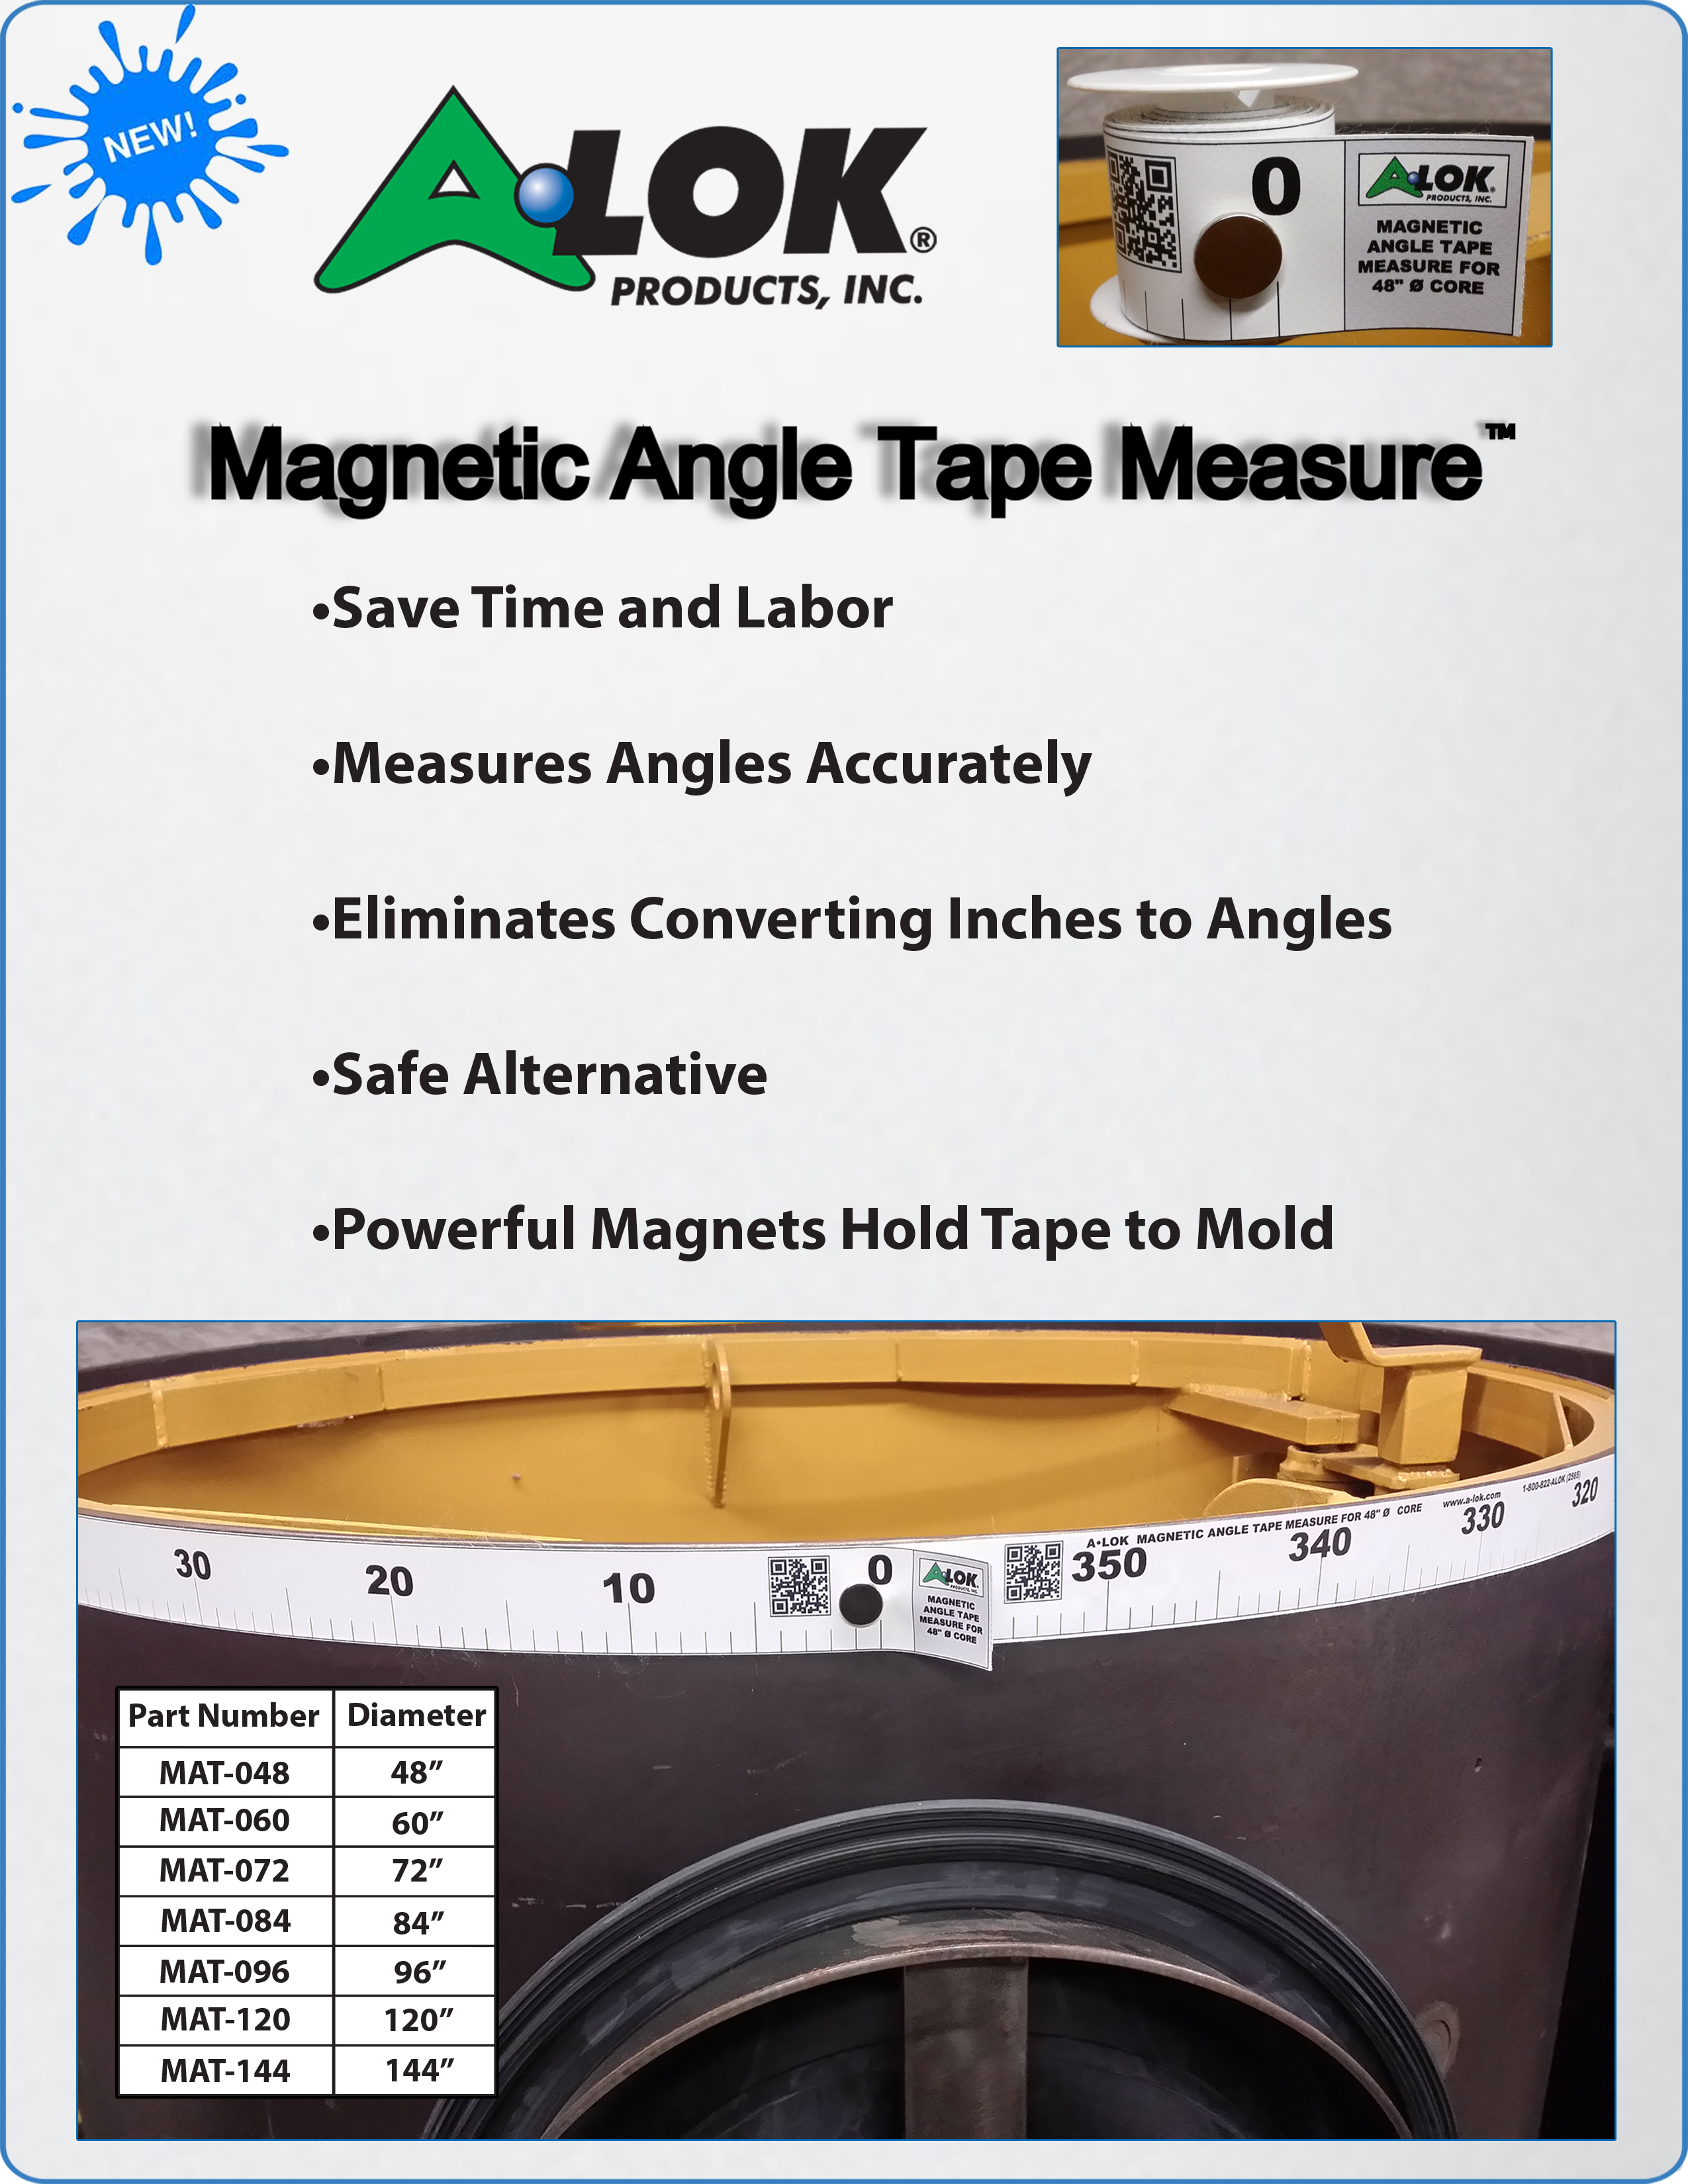 Magnetic Angle Tape Measure